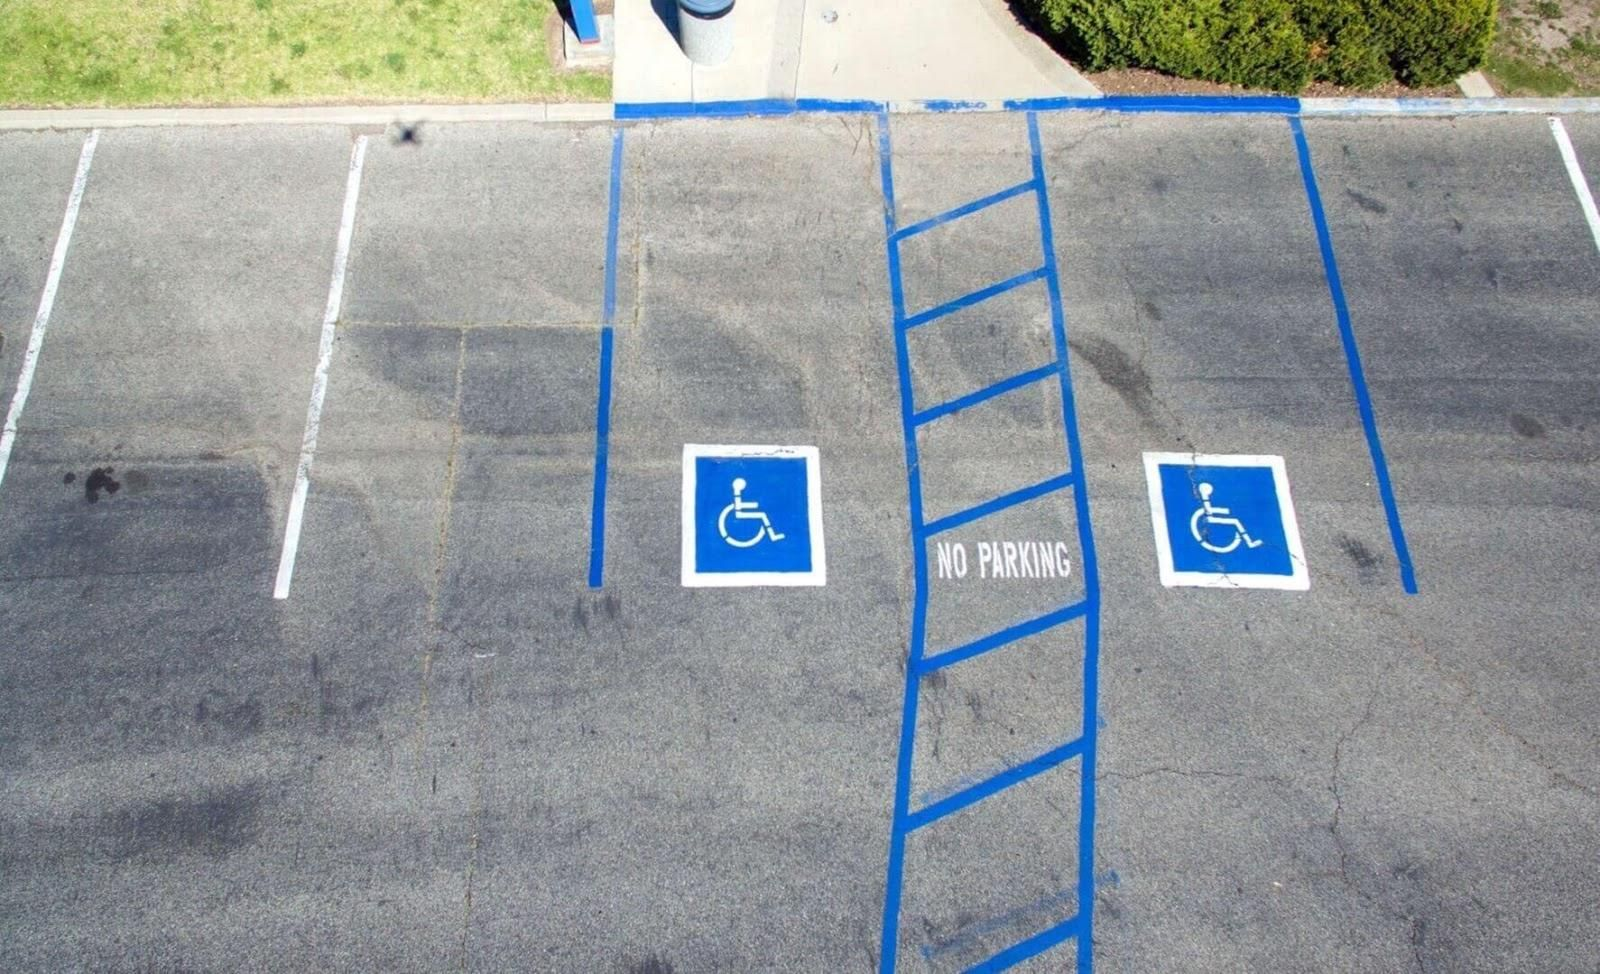 Picture of disabled parking spaces.